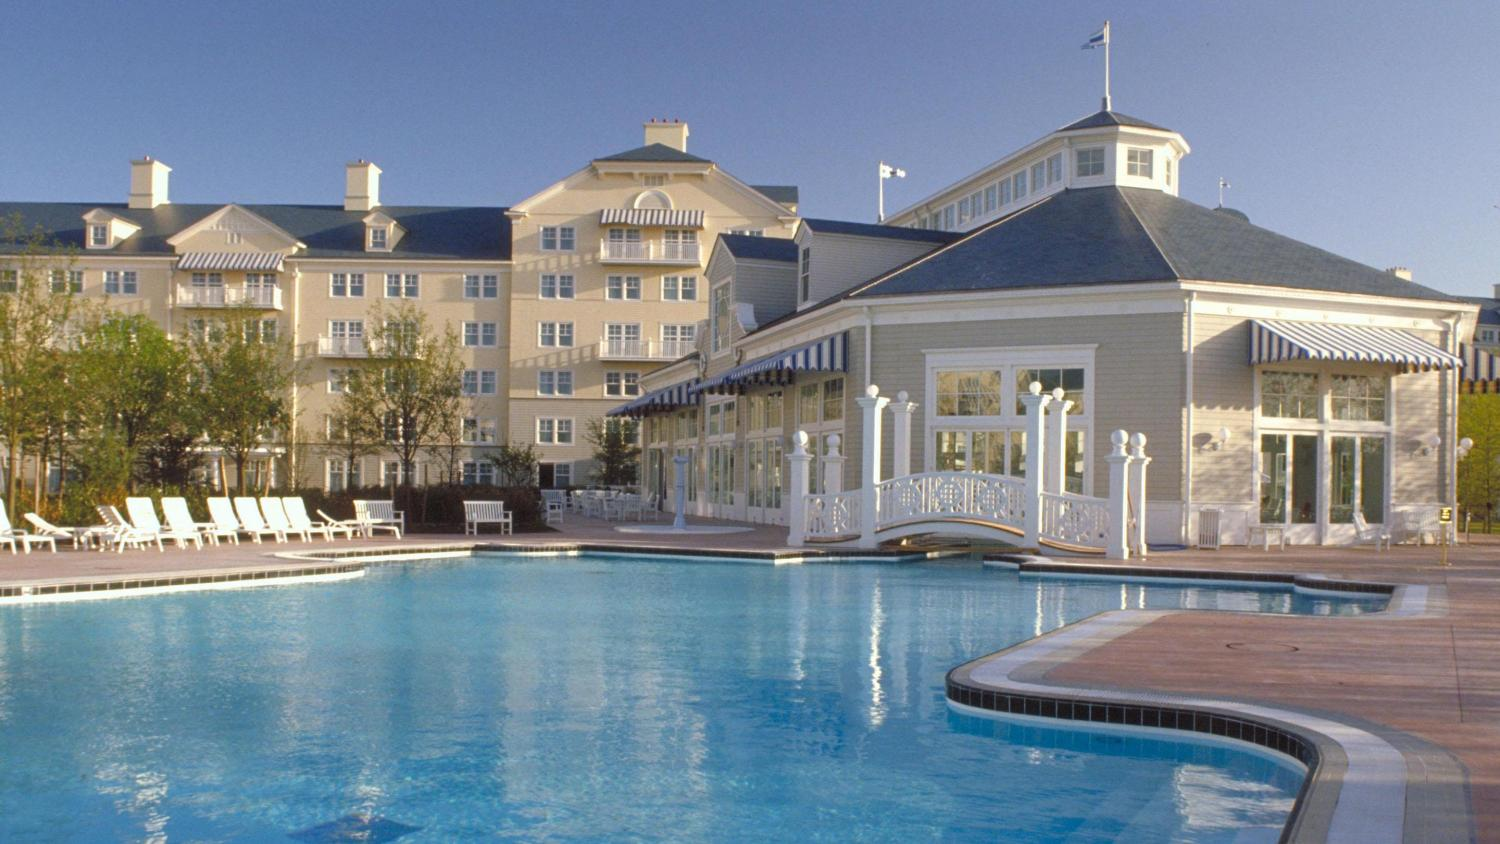 Newport Bay Club - Disneyland Resort Paris